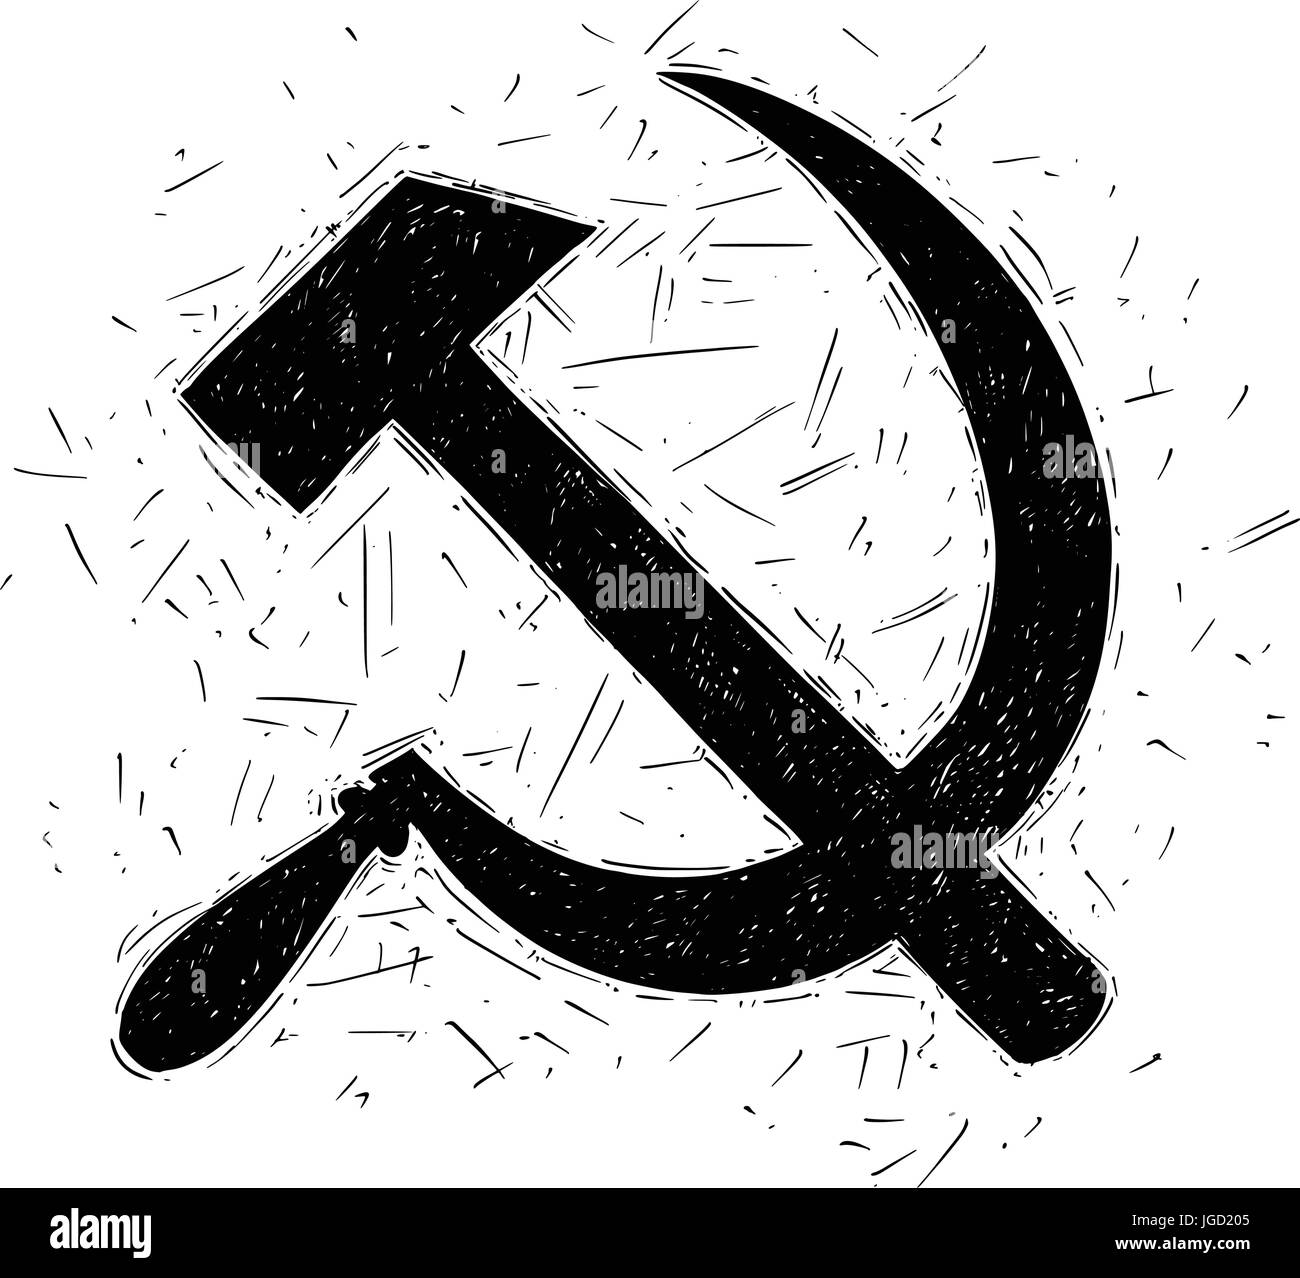 Hammer and sickle symbol of communism and soviet union stock hammer and sickle symbol of communism and soviet union biocorpaavc Gallery